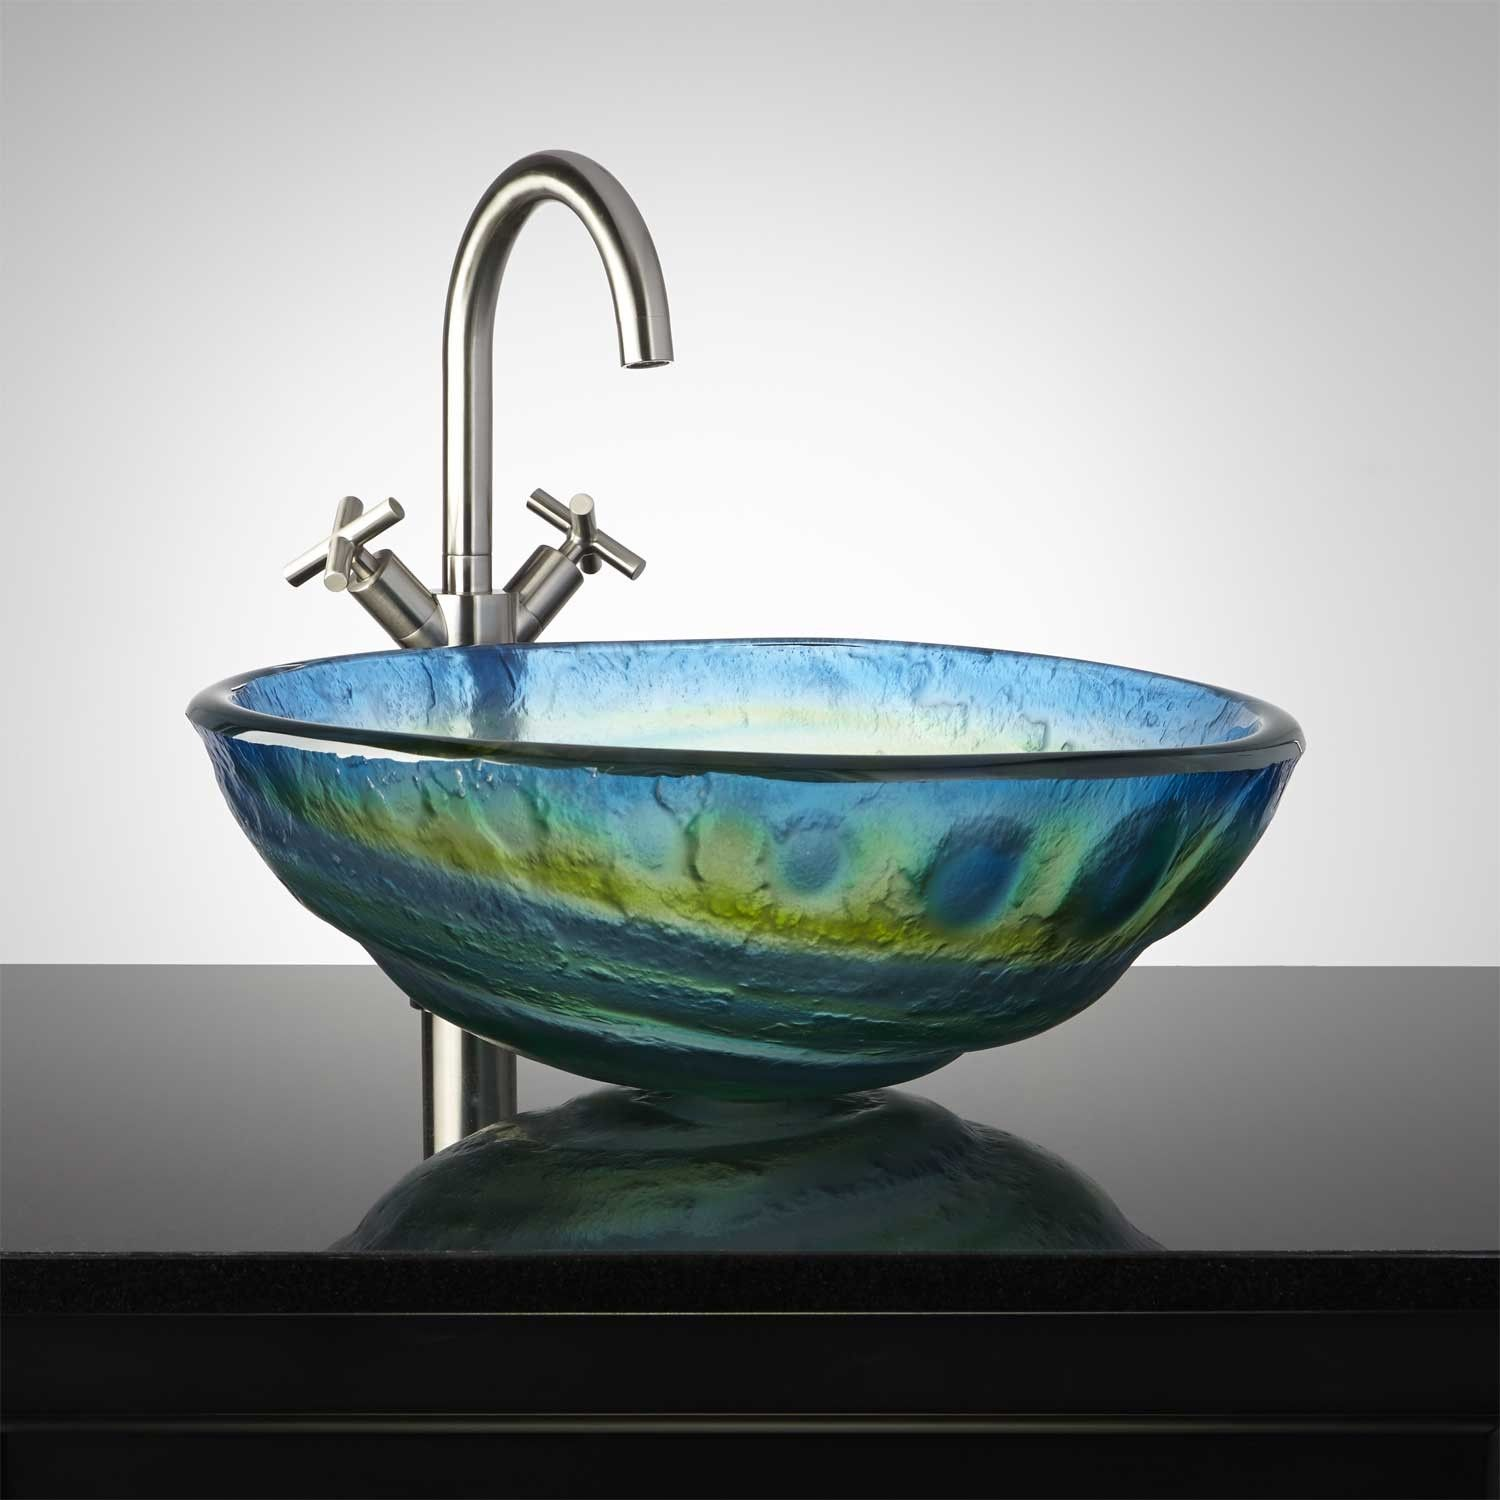 Glass Sink Bathroom Cosmo Glass Vessel Sink Vessel Sink Bathroom Glass Vessel And